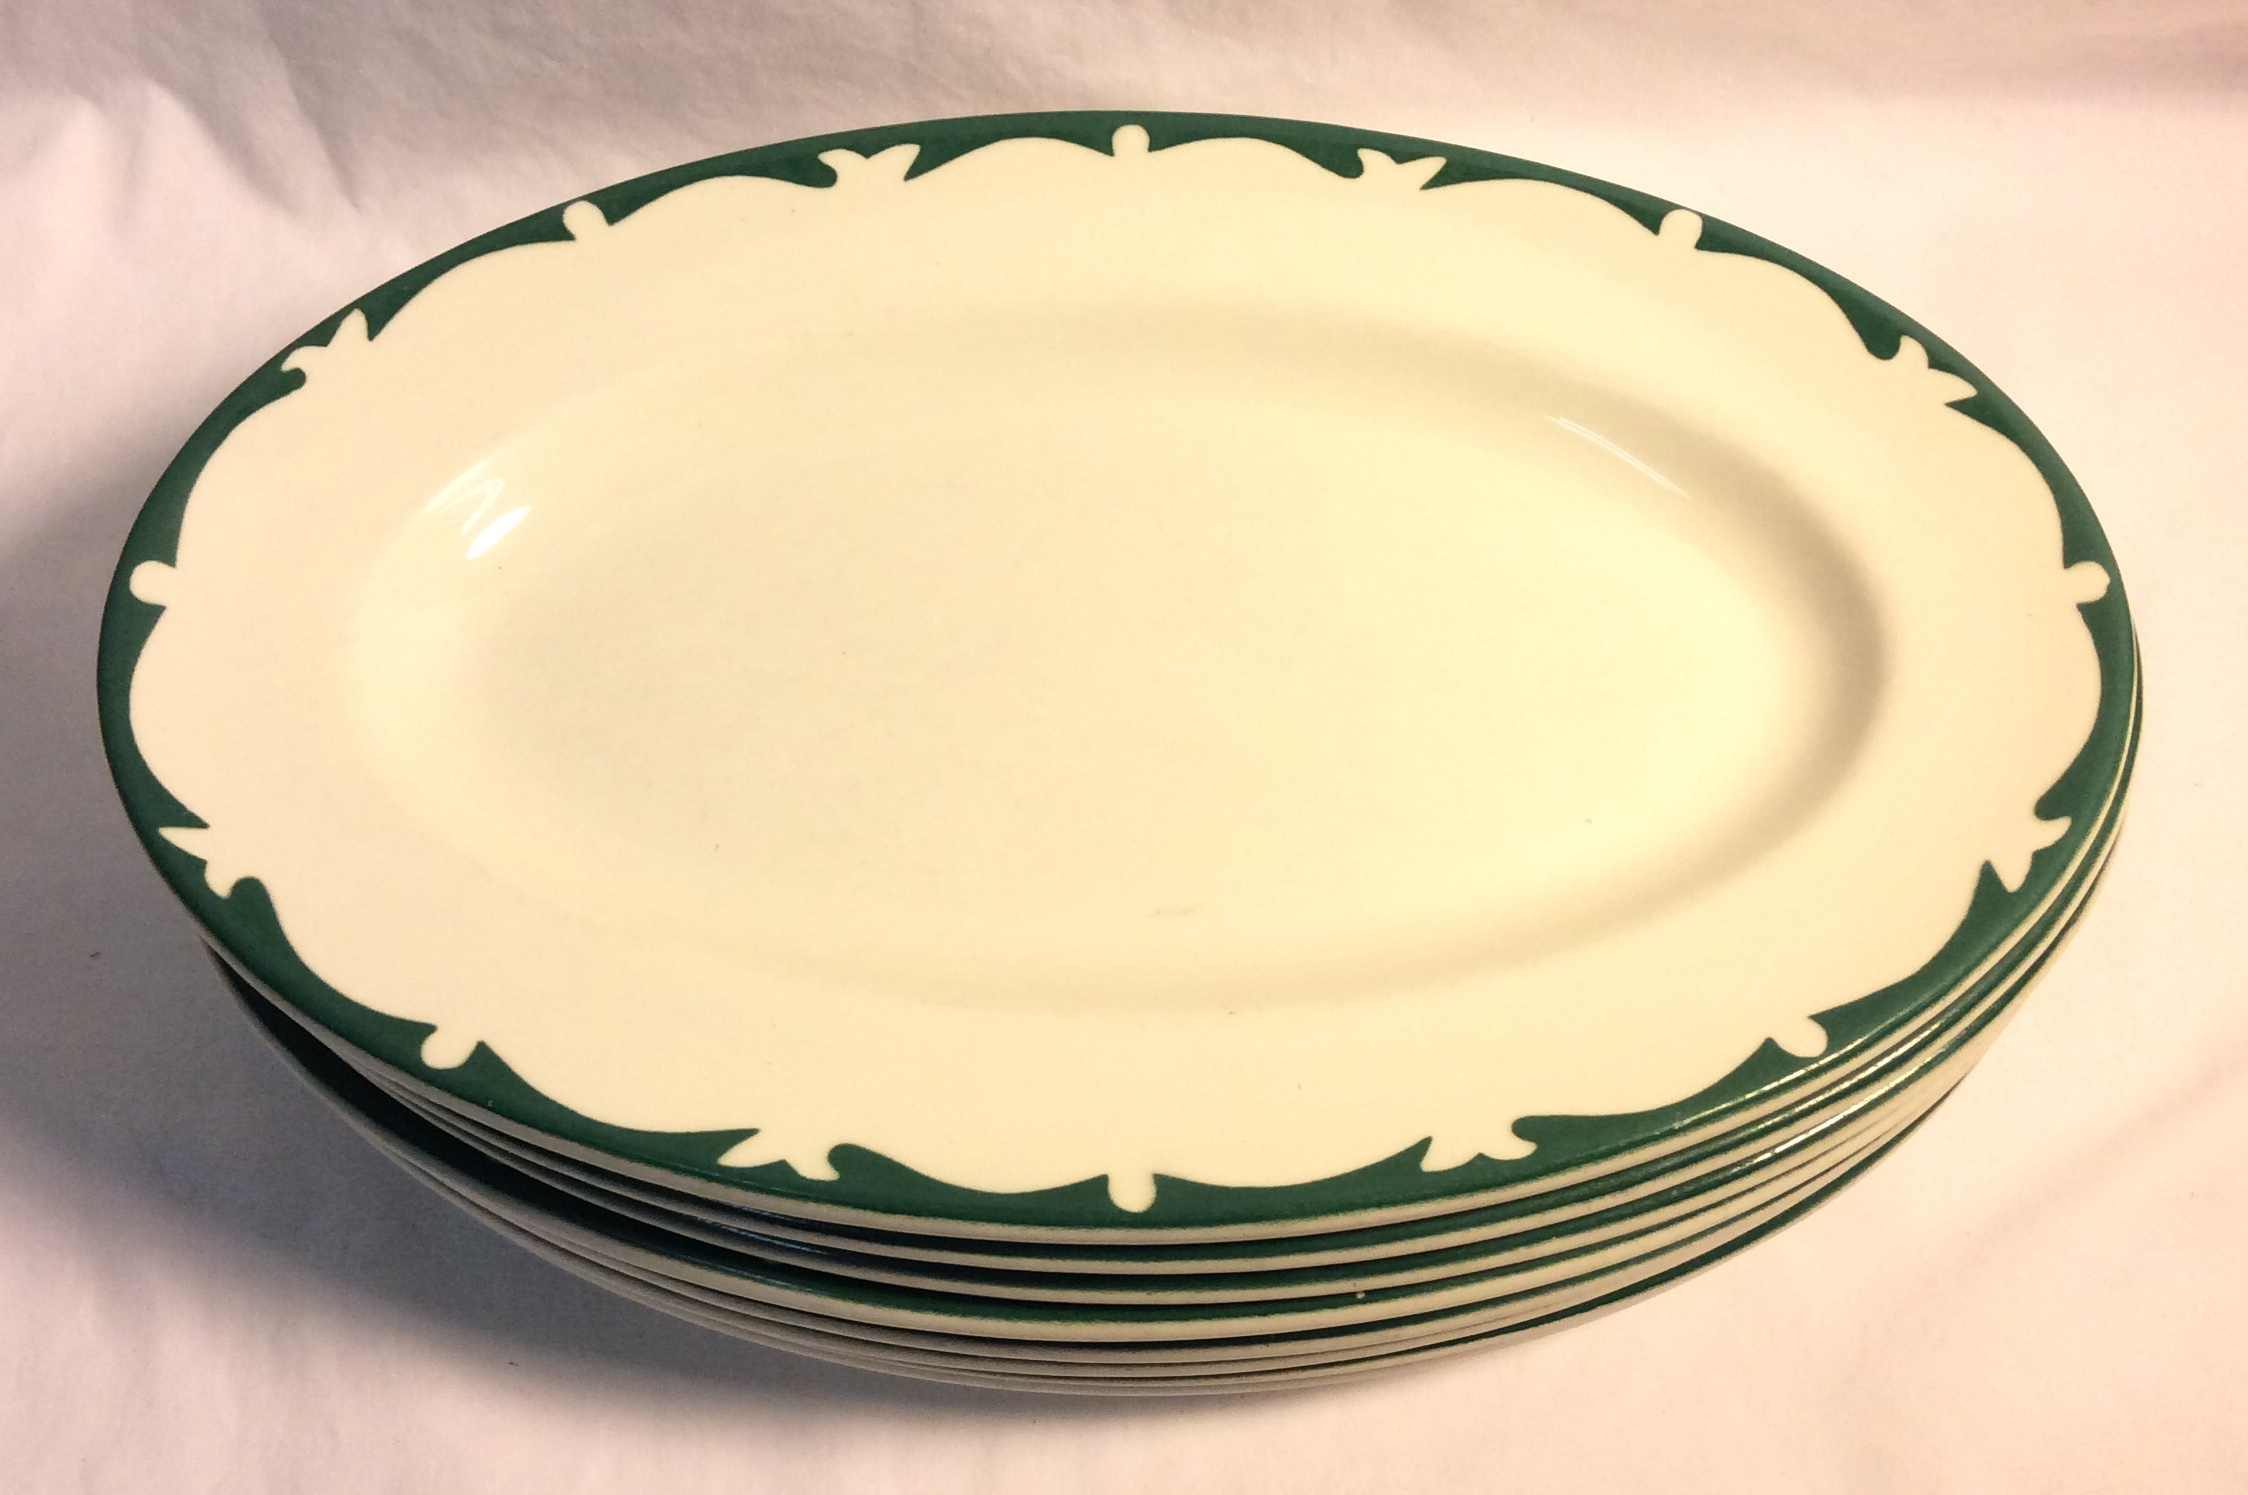 Vintage Diner oval plates, green waves x8